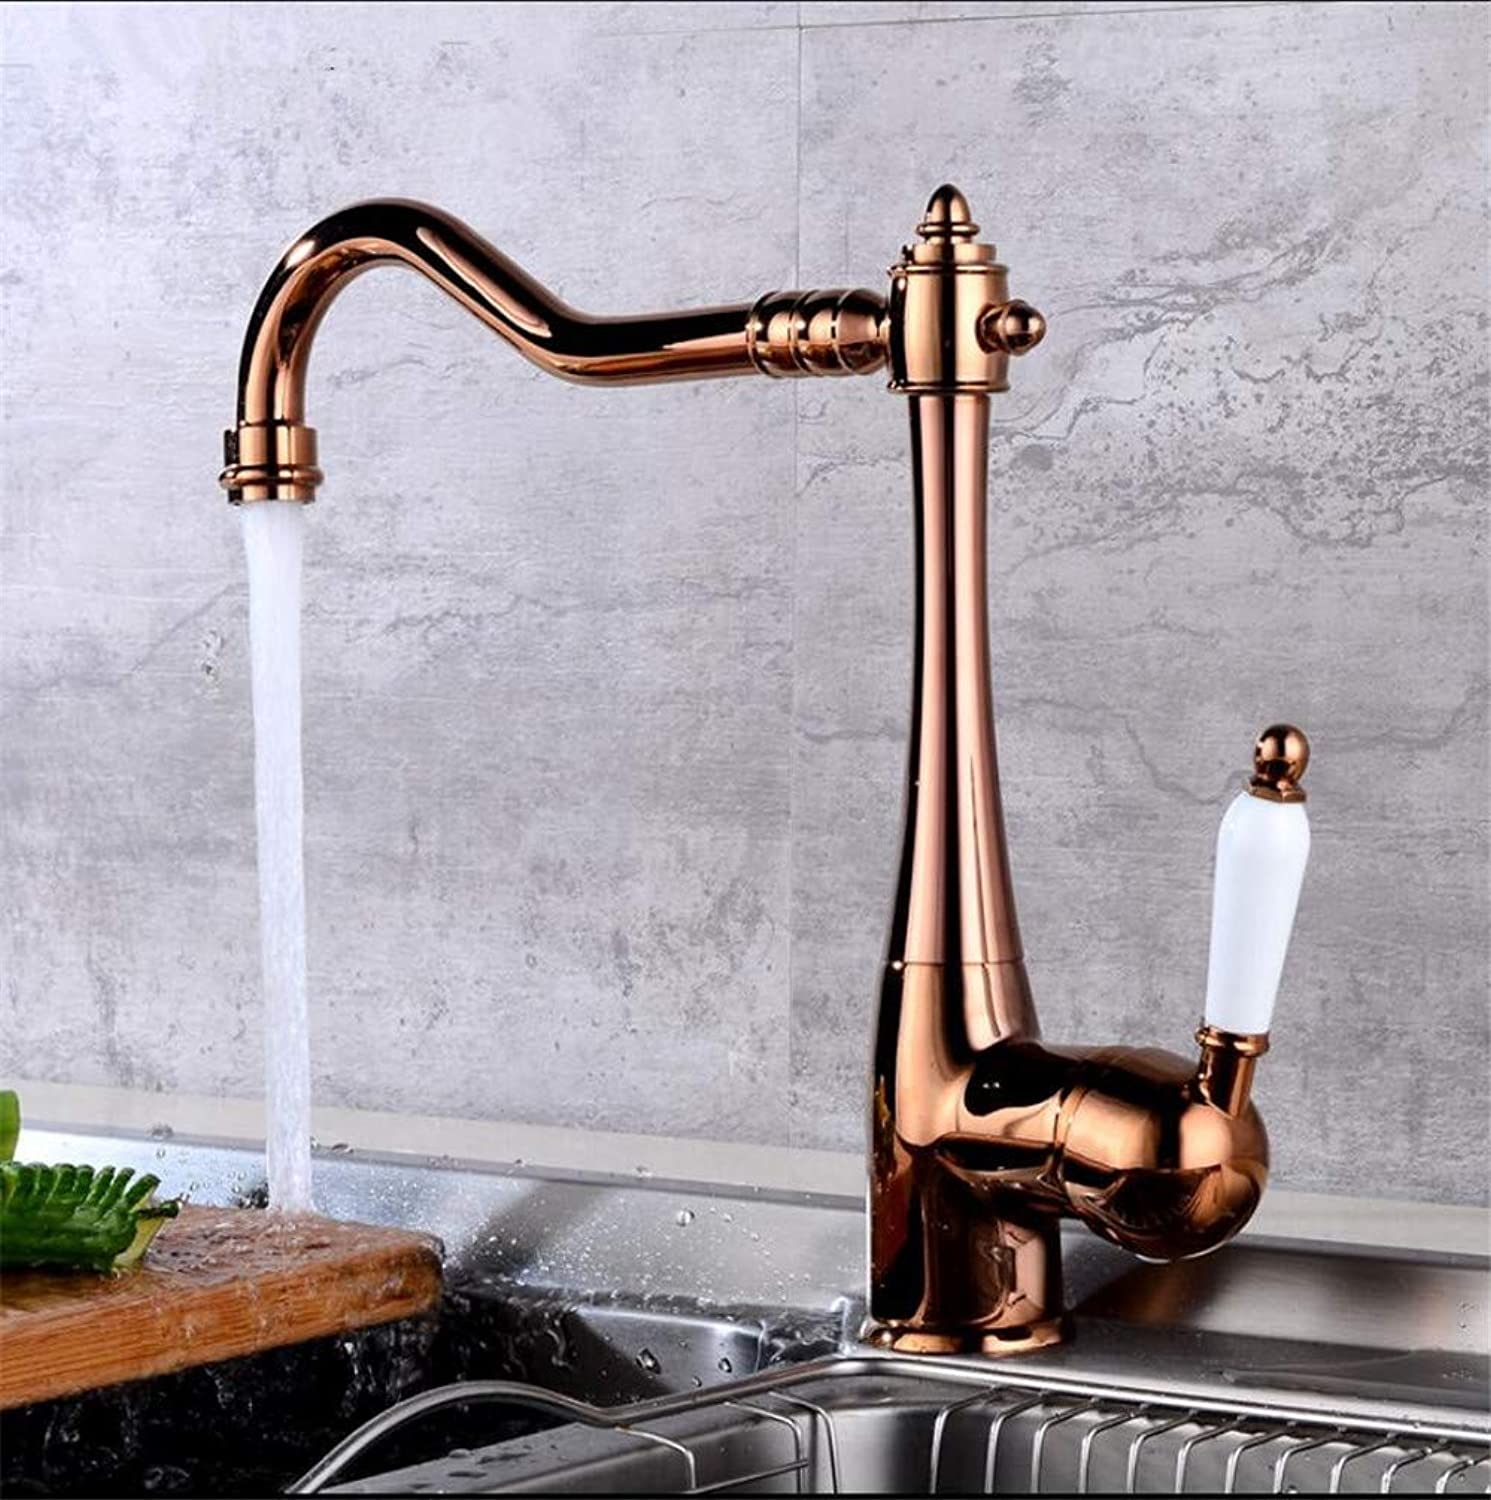 Oudan Brass pink gold Finished Hot and Cold Single Lever Kitchen Sink Faucet Ceramic Cartridge (color   -, Size   -)